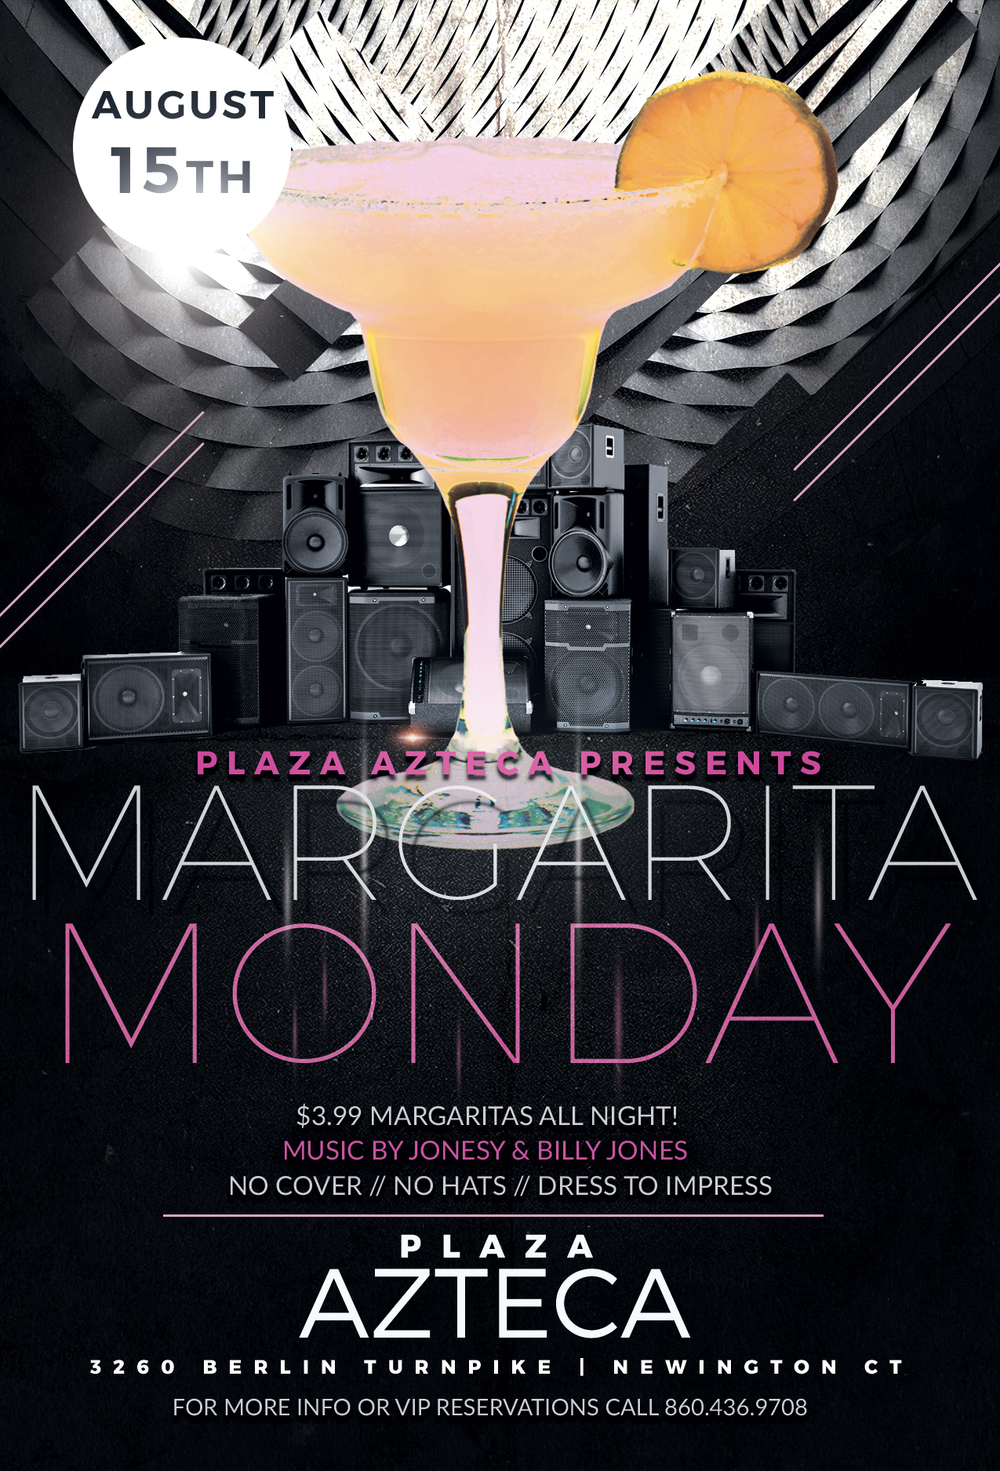 Monday, August 15th join me at Plaza Azteca in Newington, CT for Margarita Monday with music by Billy Jones & yours truly 9pm-close.  $3.99 Margaritas all night long!  Meet me there!